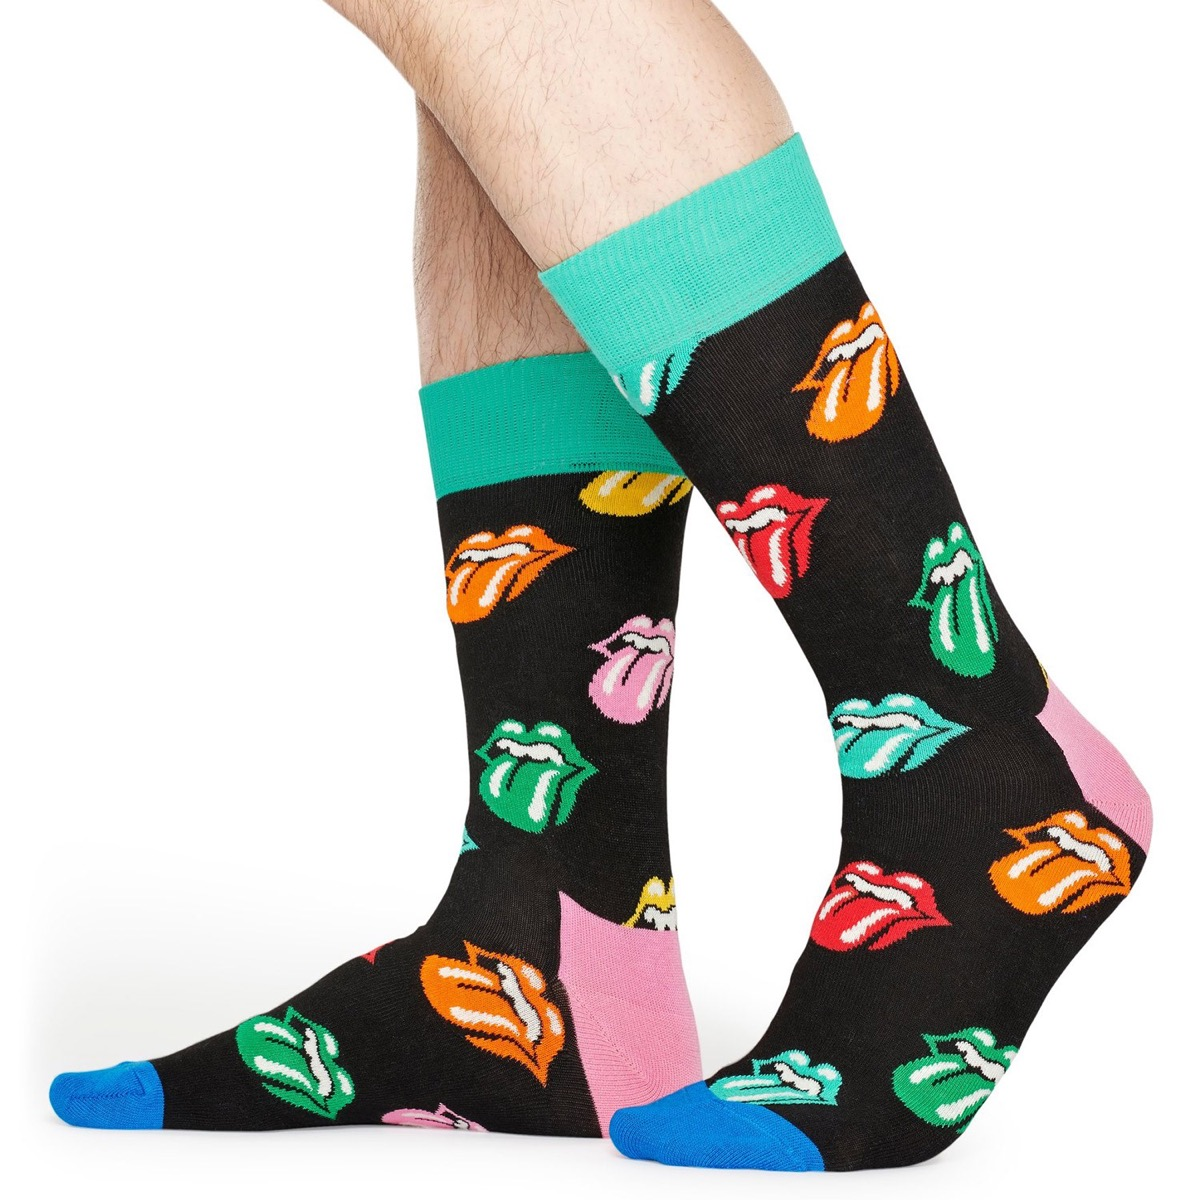 socks with rolling stones logos